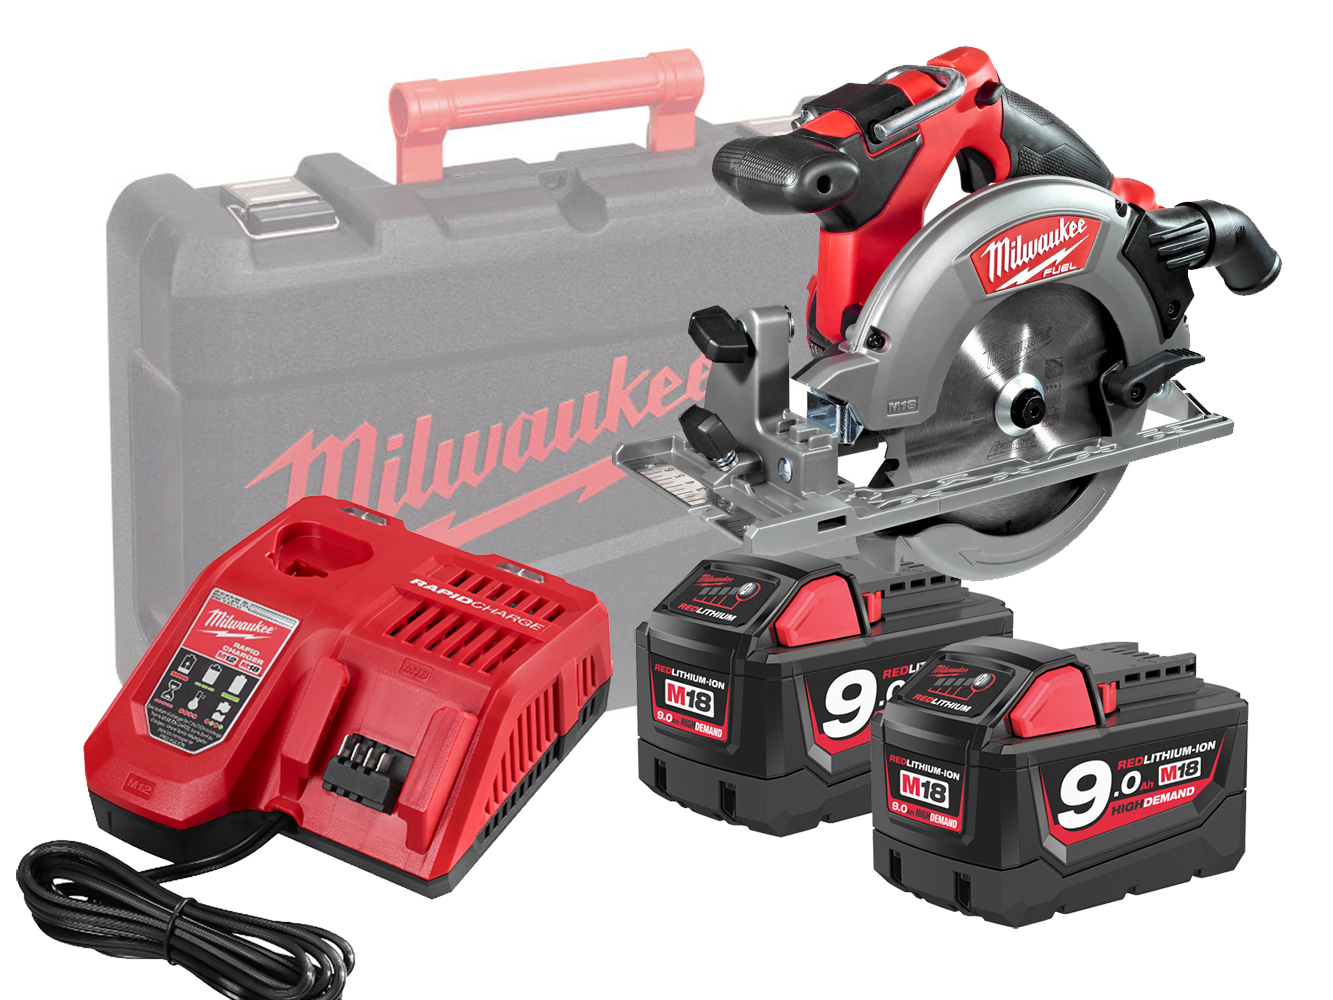 Milwaukee M18CCS55 18V FUEL 165mm (55mm) Circular Saw for Wood and Plastics - 9.0ah Pack